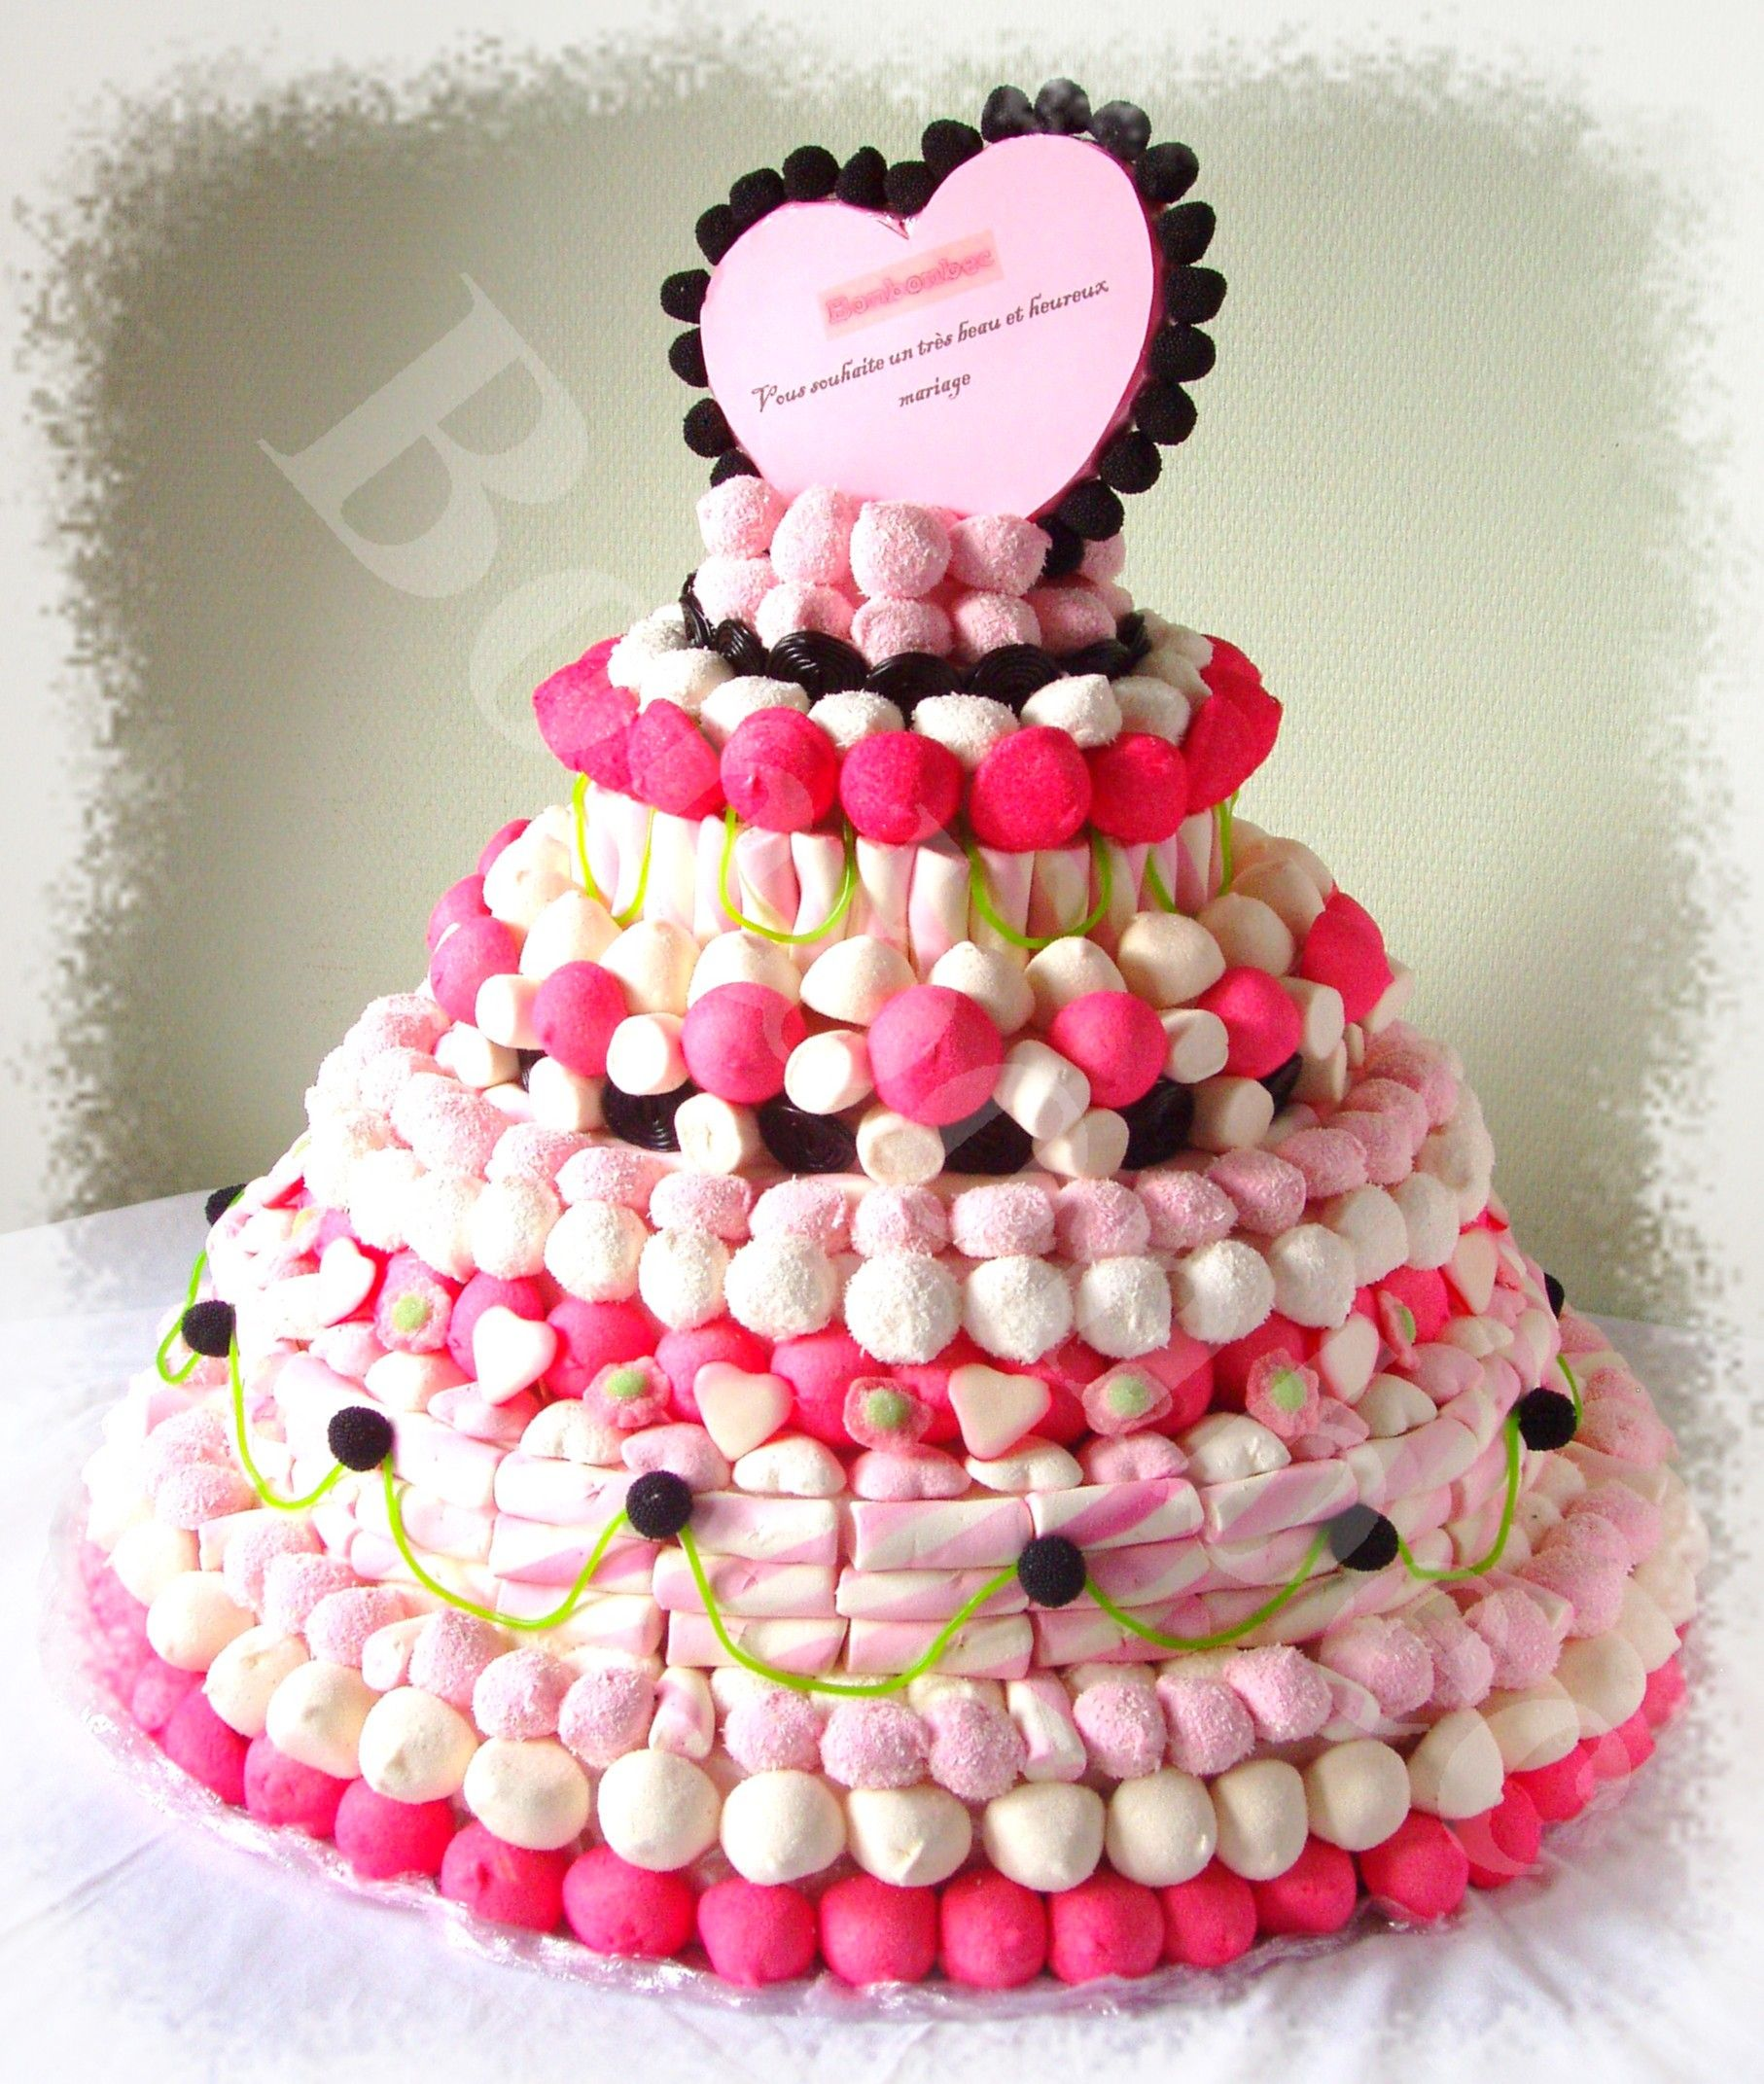 1000 images about gteau de bonbons on pinterest - Piece Montee Bonbon Mariage